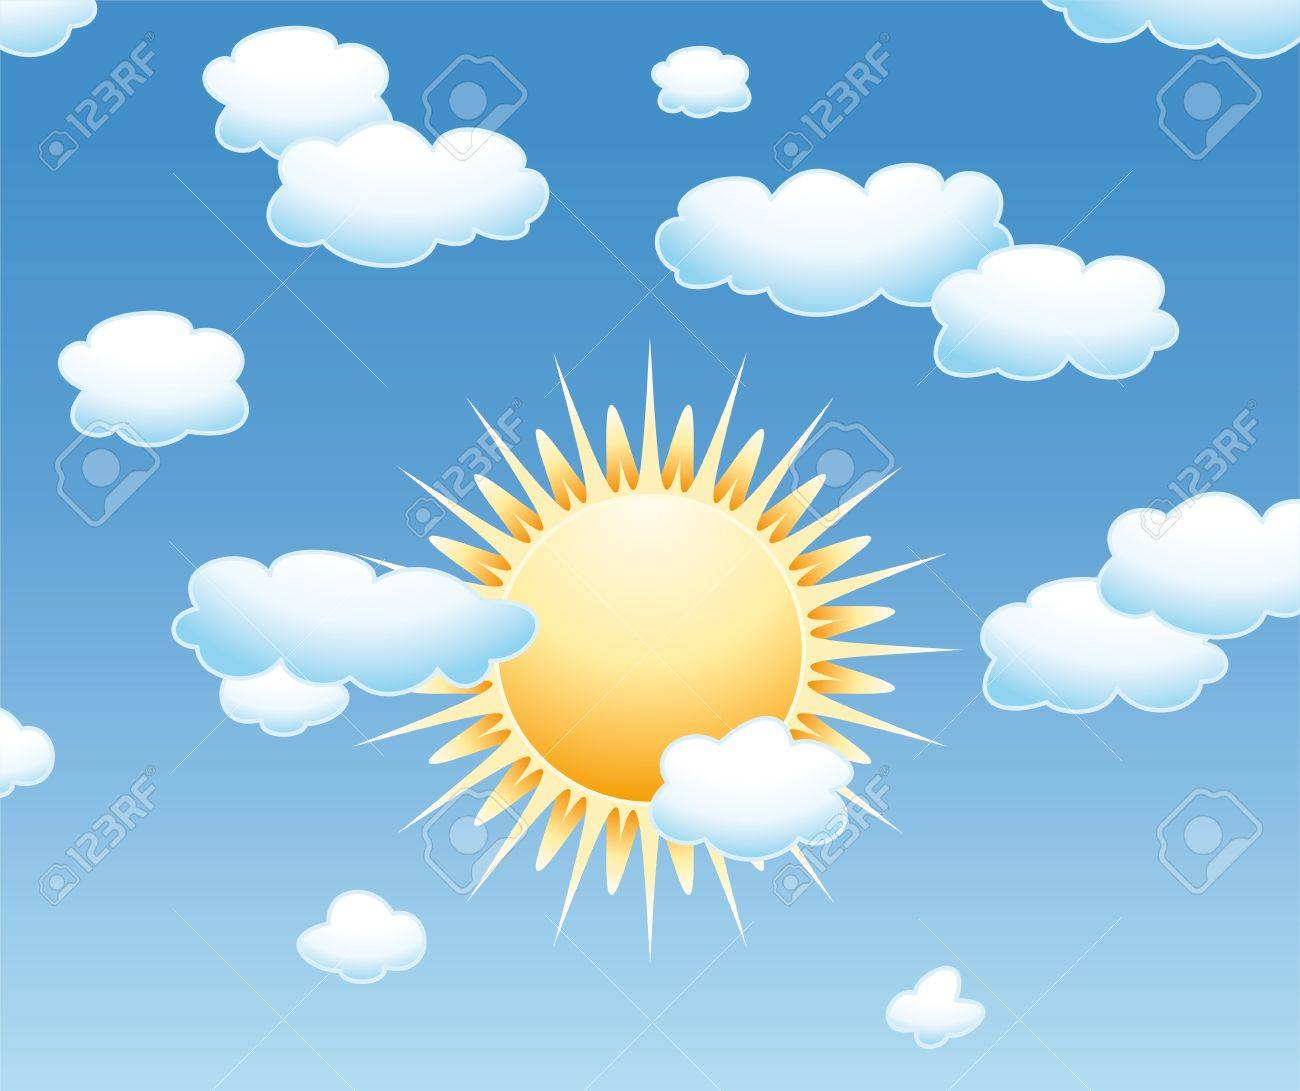 hight resolution of background with clouds and sun in the sky stock vector 14268772